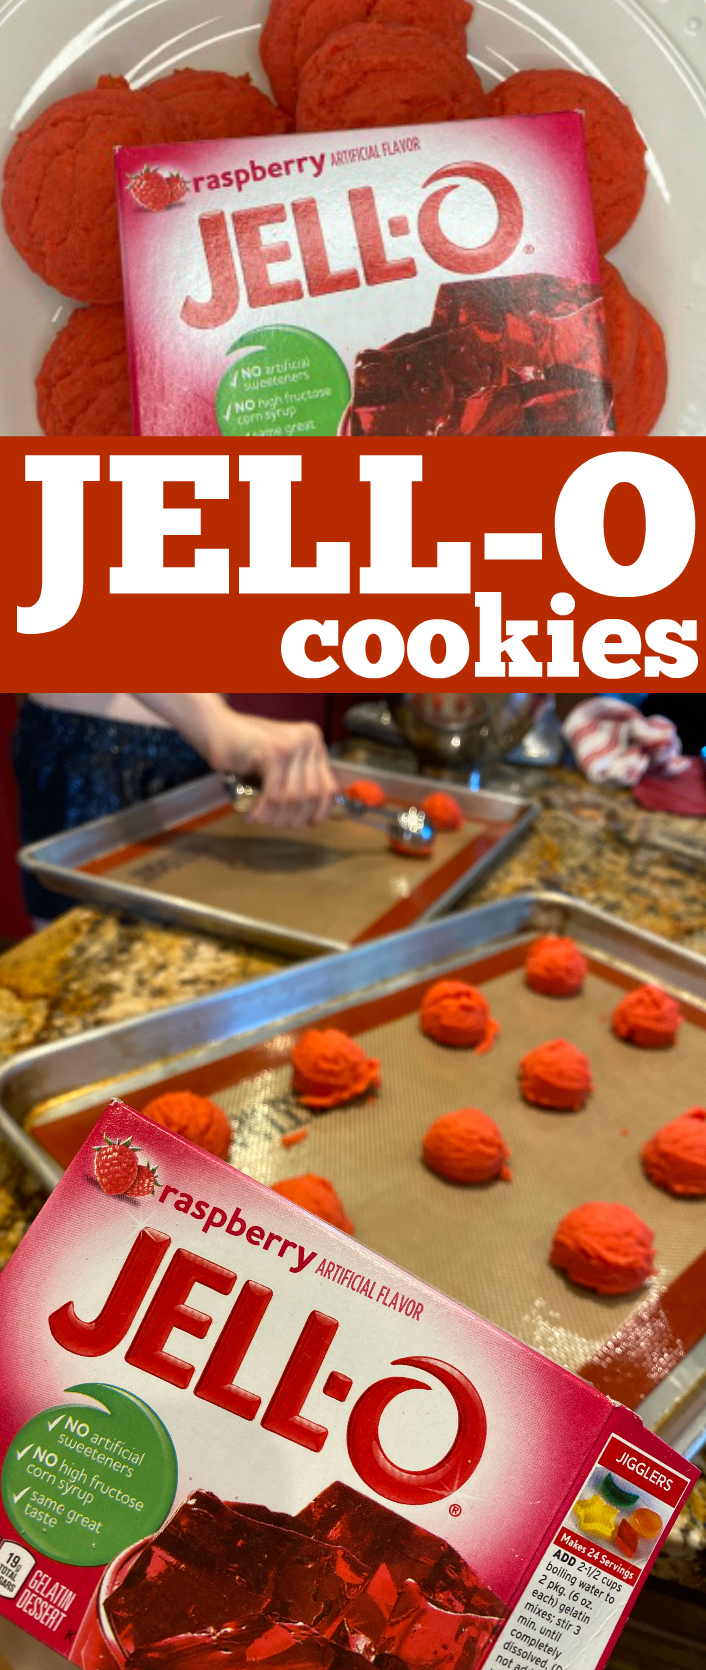 How to make Jello Cookies from Jell-O gelatin packages